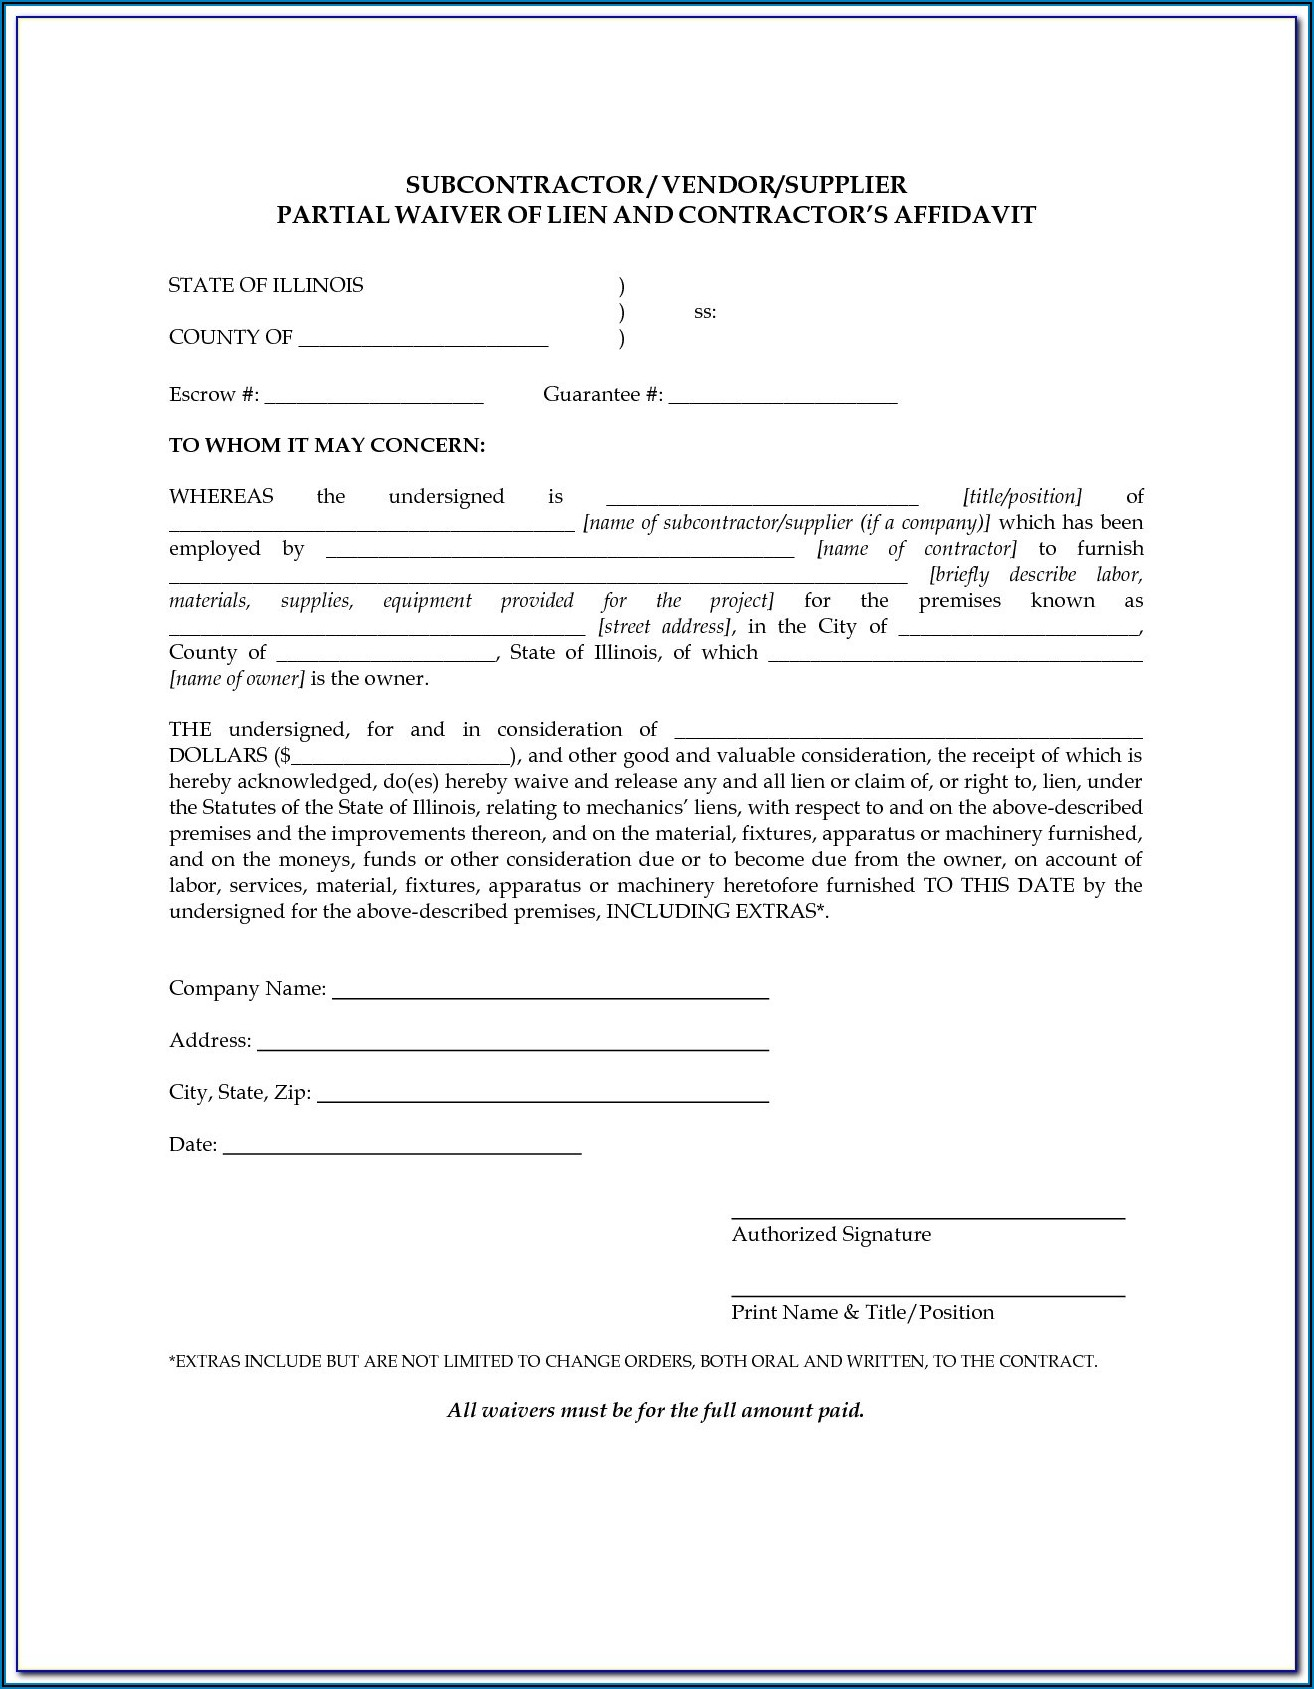 Florida Discharge Of Mechanics Lien Form